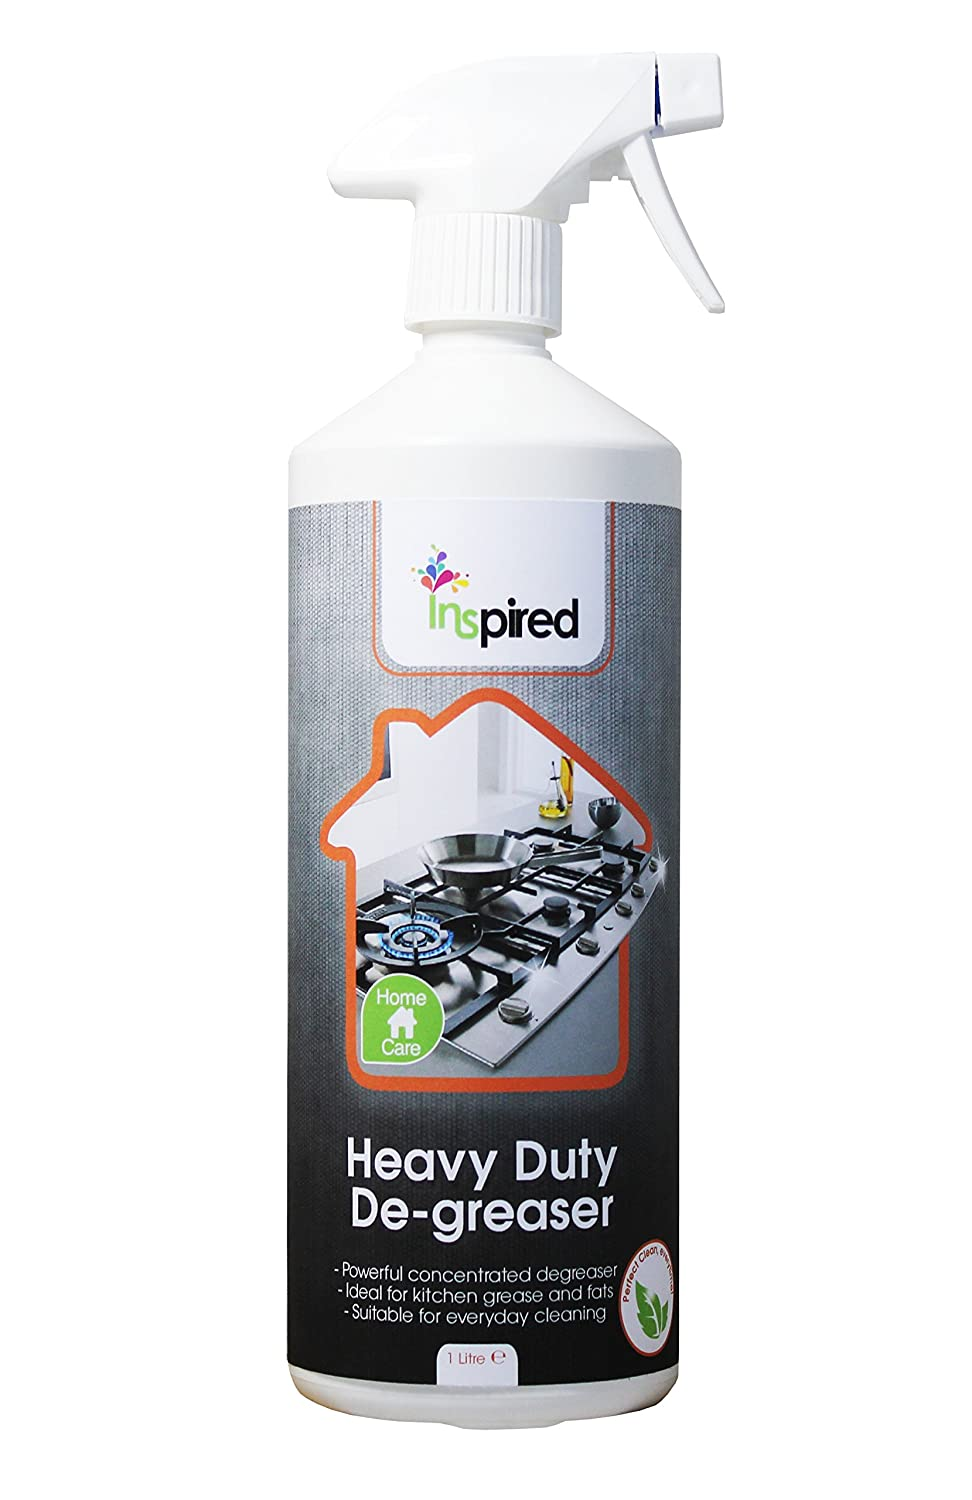 Inspired 1 litre Heavy Duty Degreaser: Amazon.co.uk: Garden & Outdoors